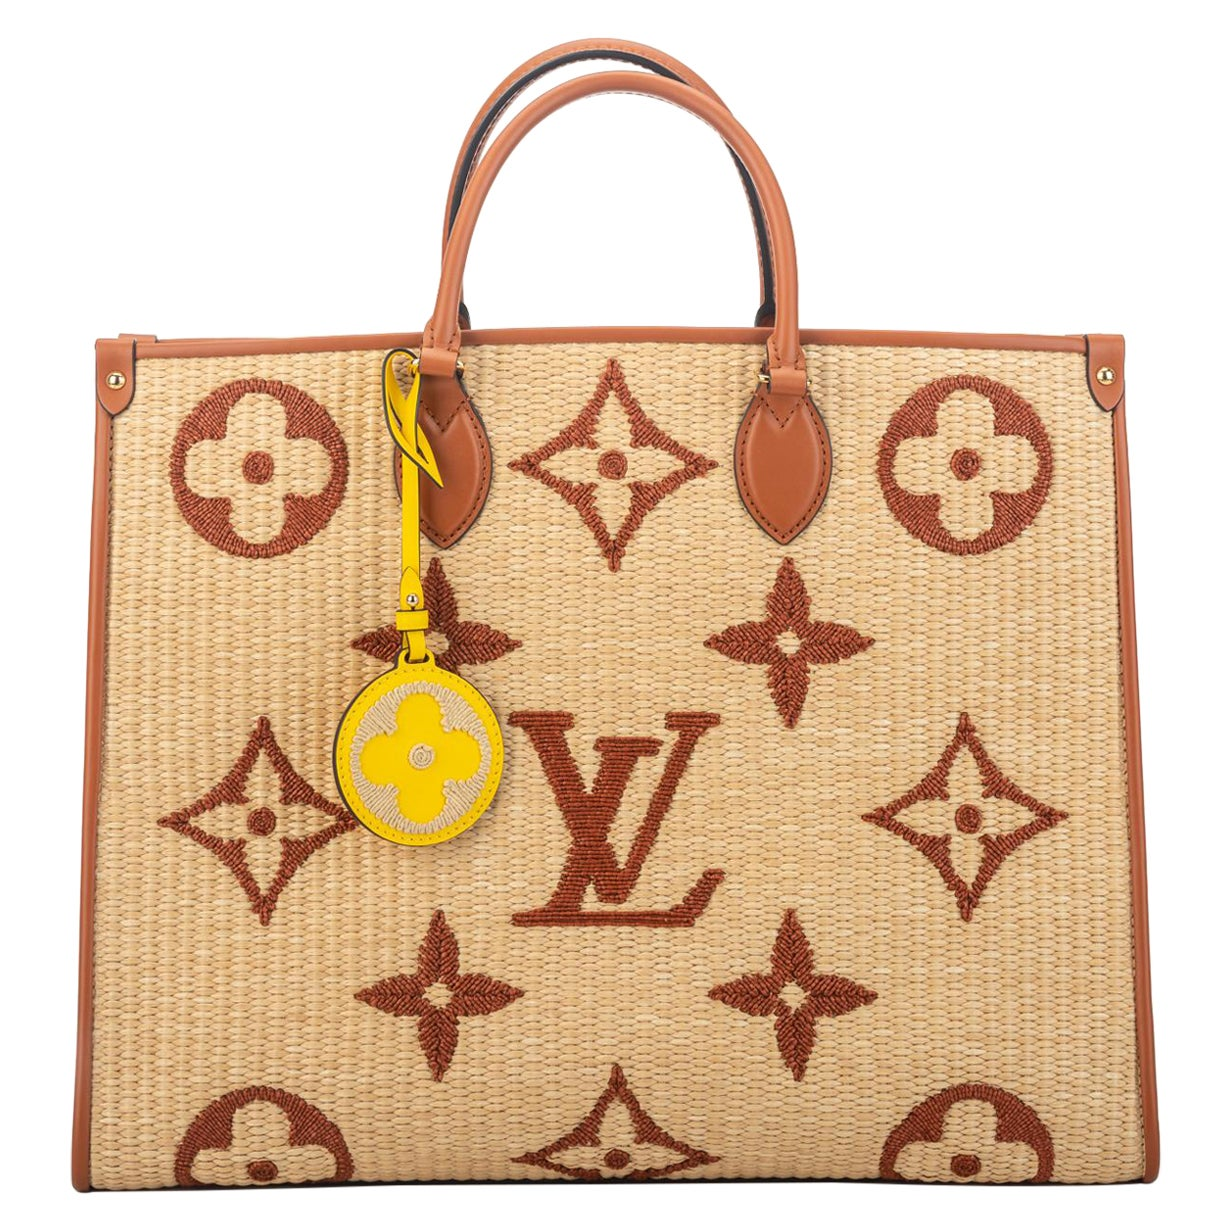 New Louis Vuitton Raffia Limited.Edition On The Go Bag with Box